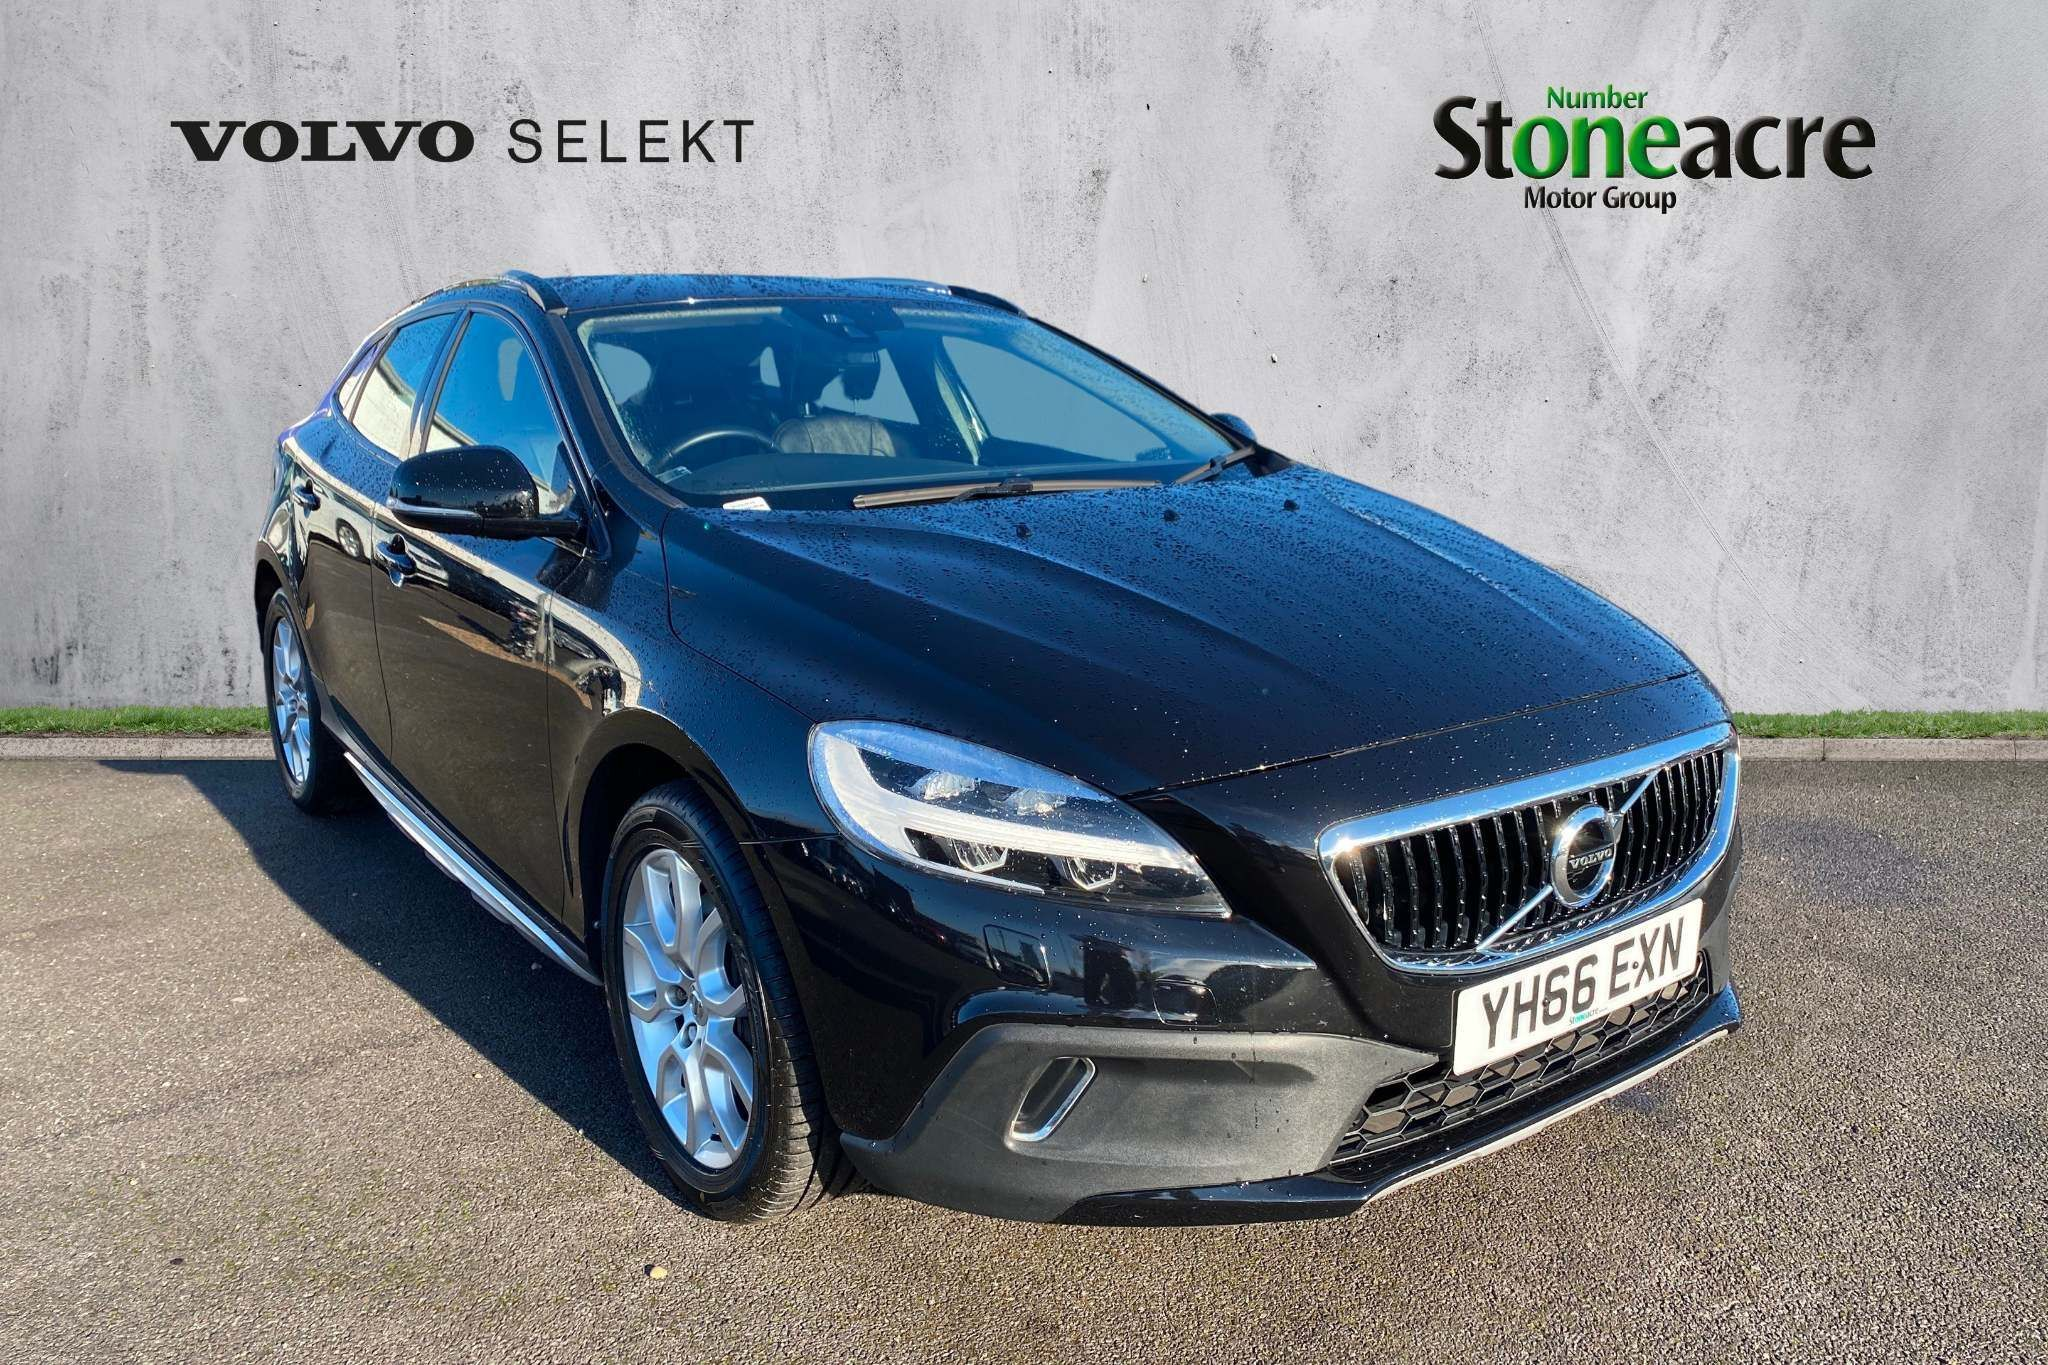 2016 Volvo V40 1.5 T3 Cross Country Pro (66 reg)